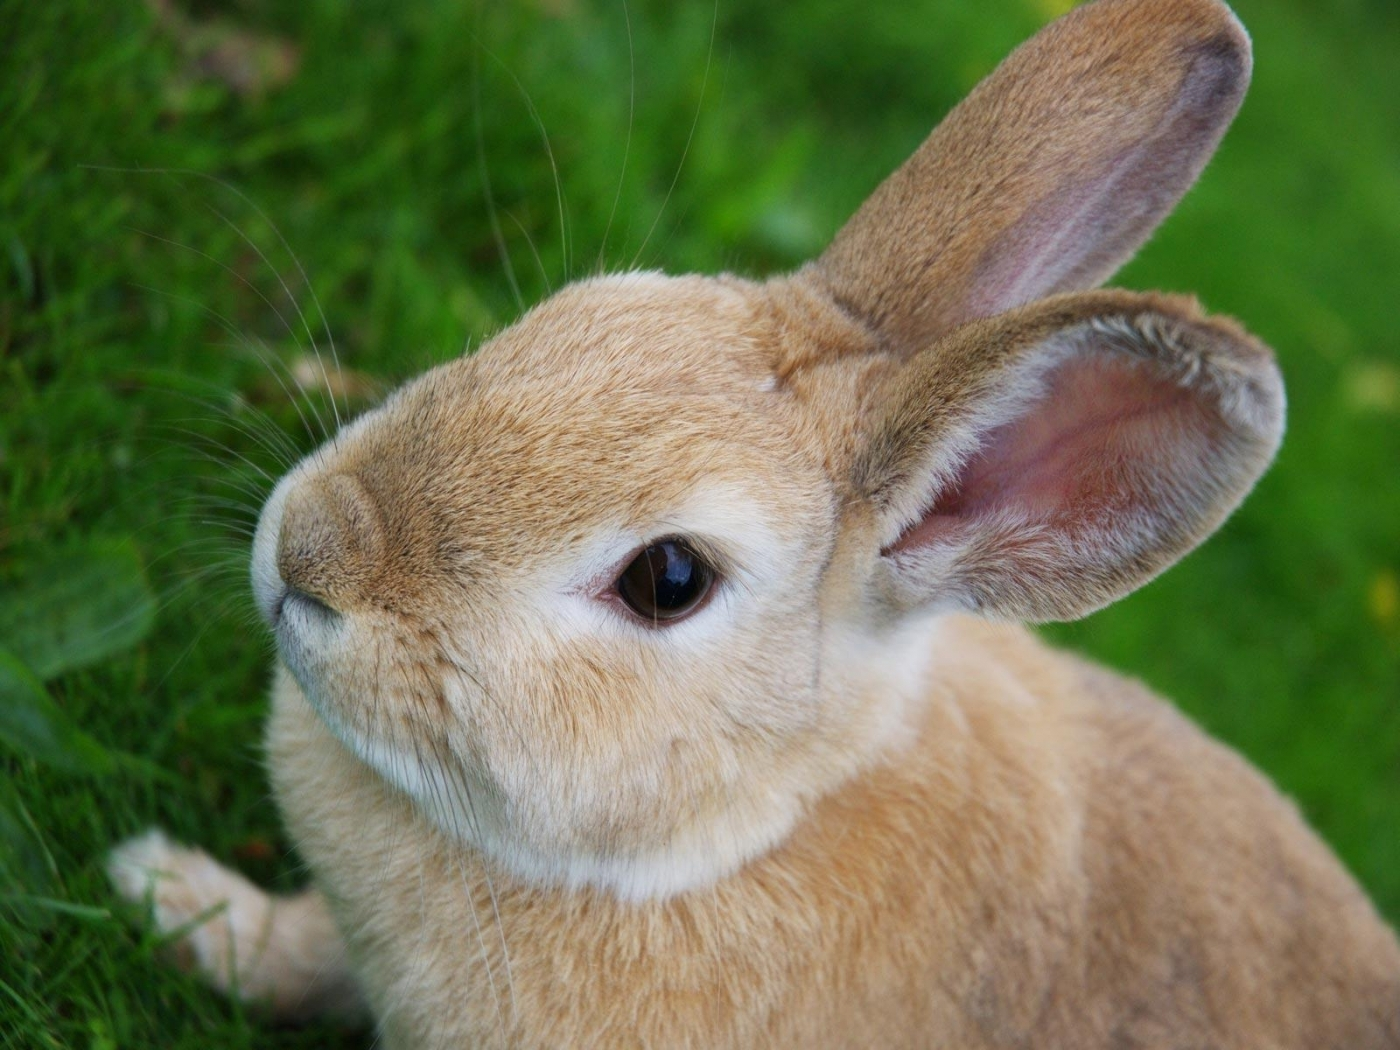 43695 download wallpaper Animals, Rabbits screensavers and pictures for free